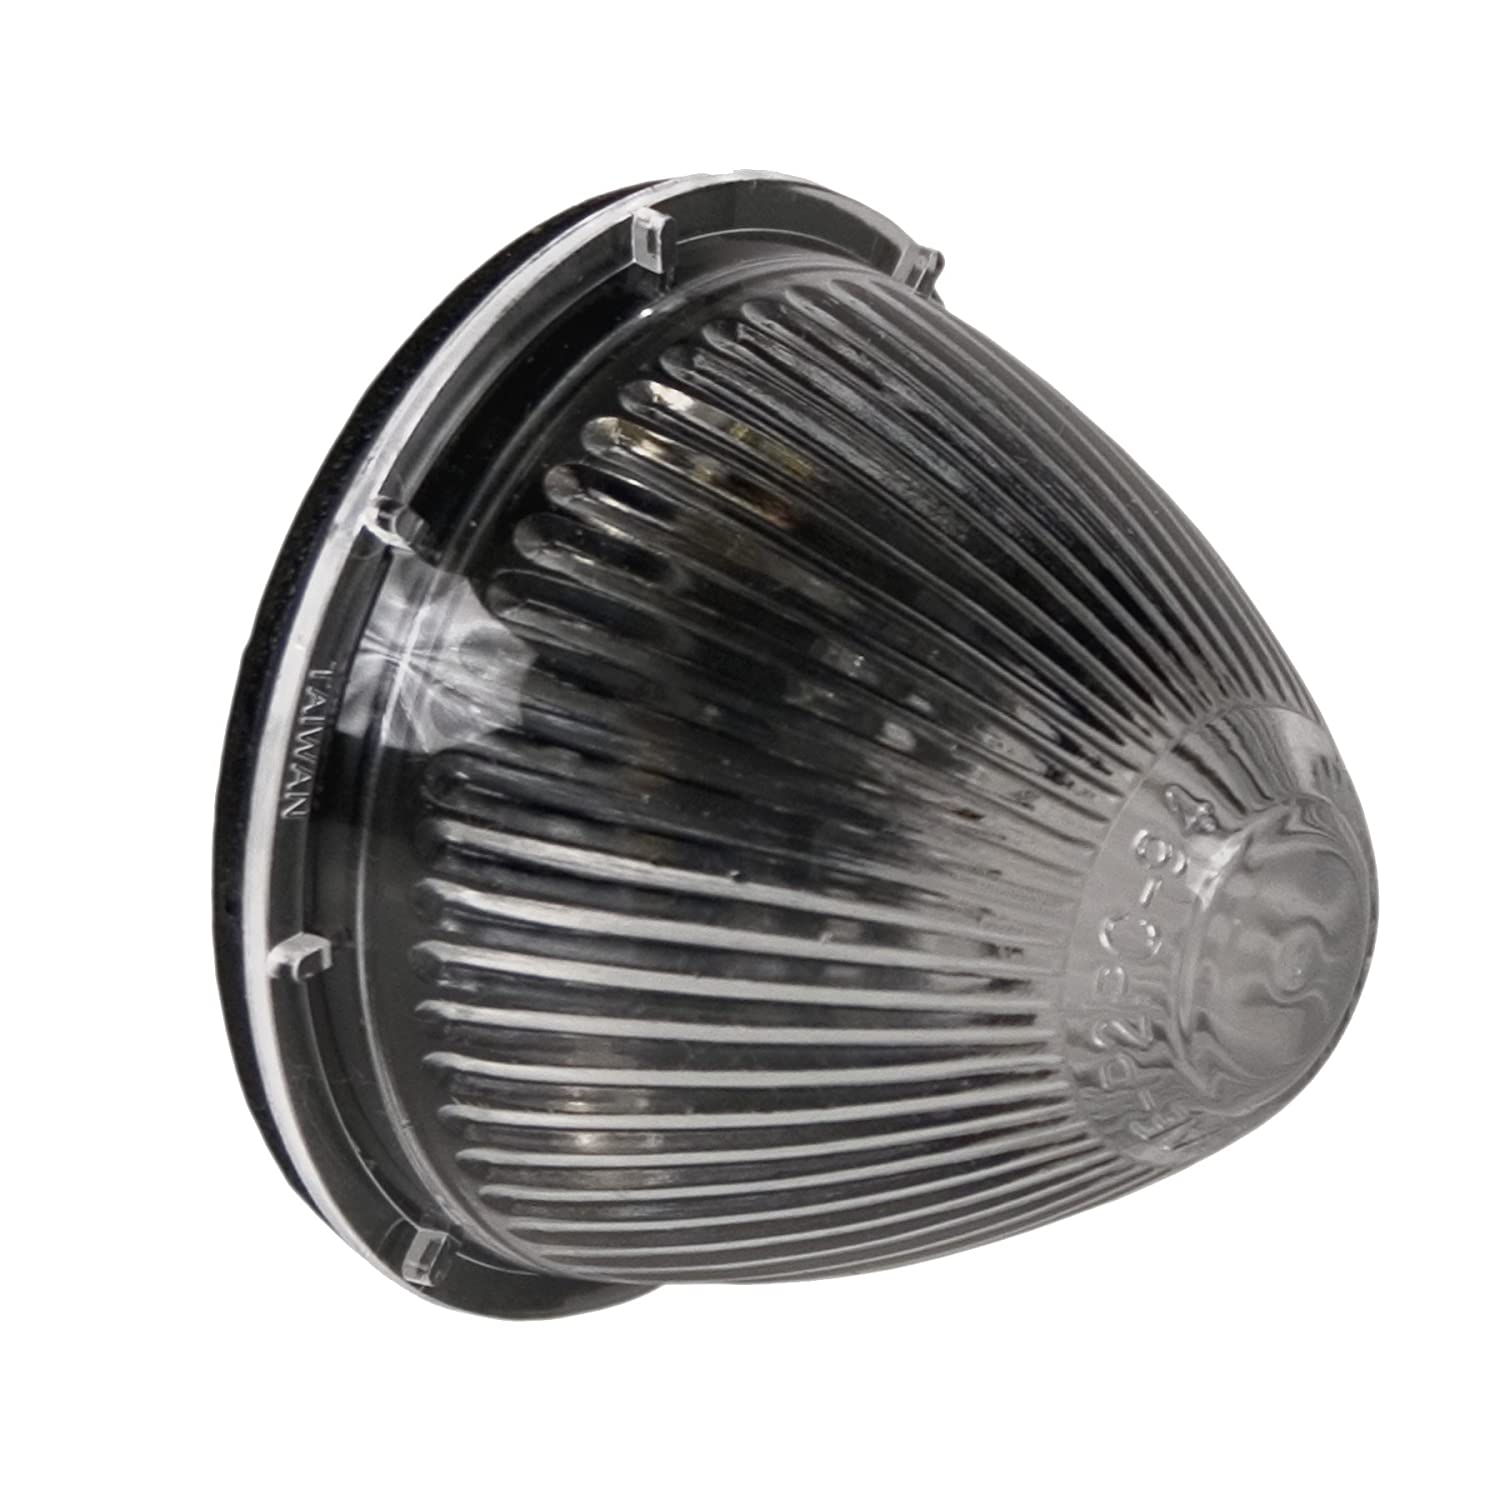 Blazer B666C Clear beehive marker Light-1 each Blazer International Trailer & Towing Accessories